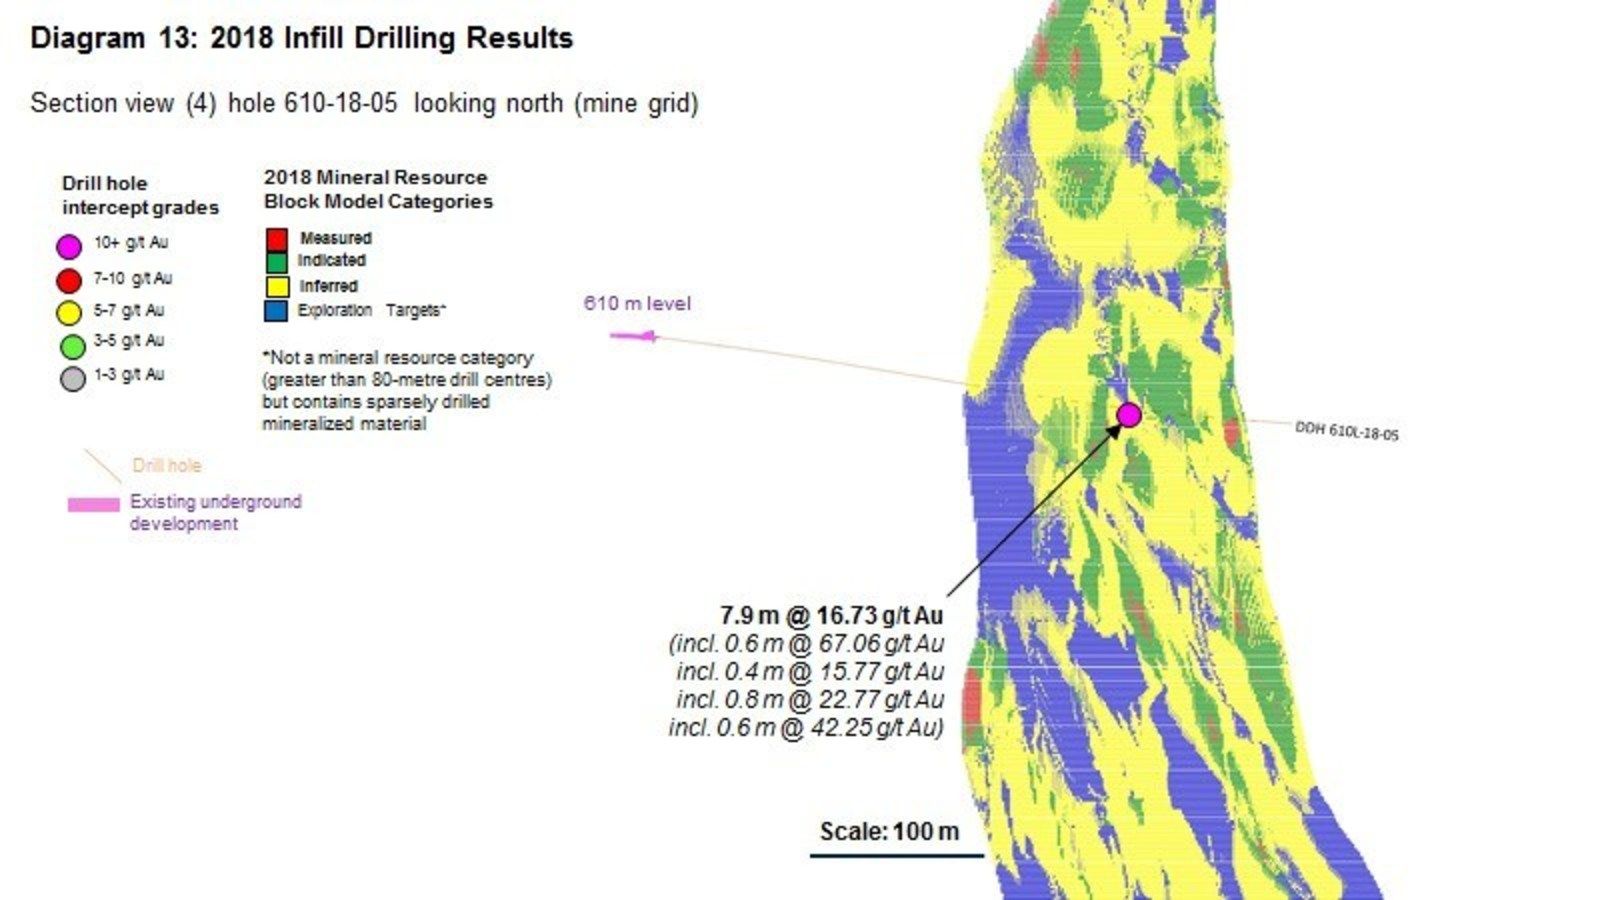 Diagram 13 : 2018 Infill Drilling Results